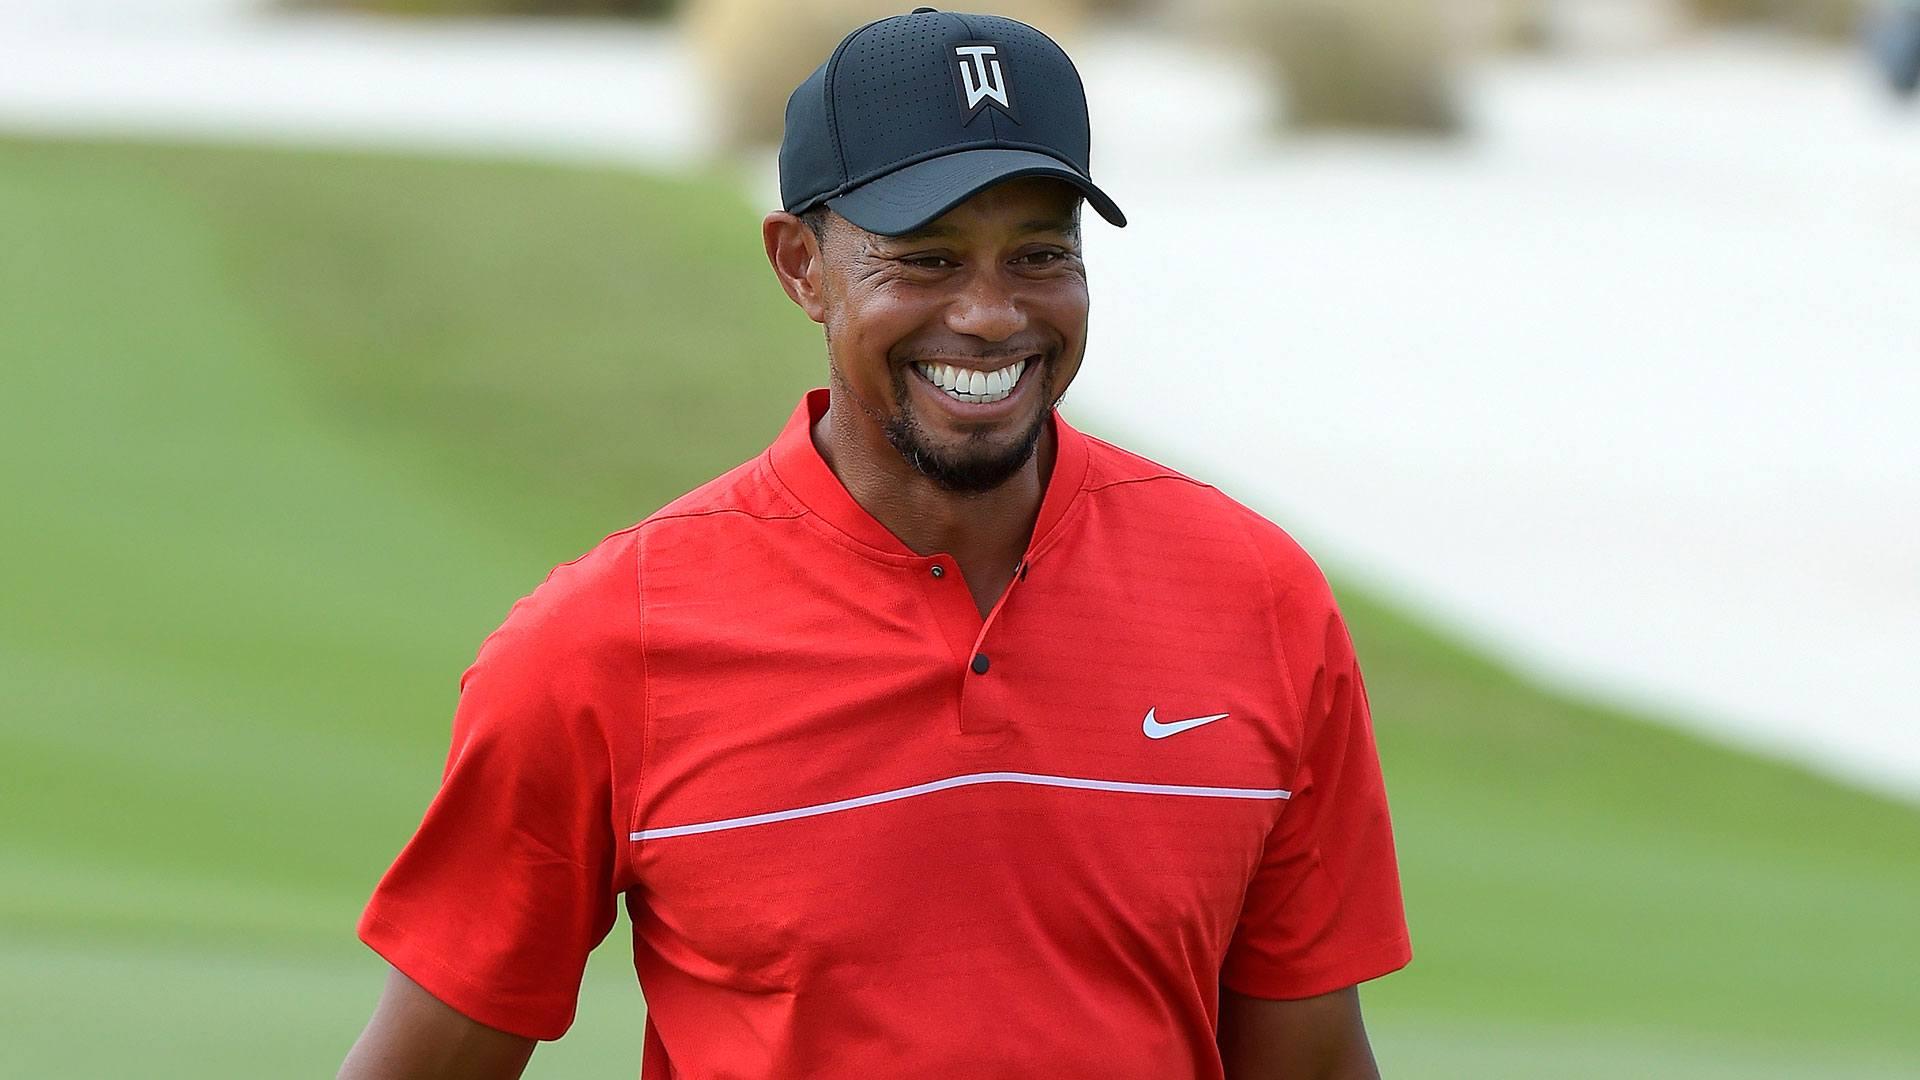 Tiger Woods Odds Show Vegas Still Believes in the Golfing Great